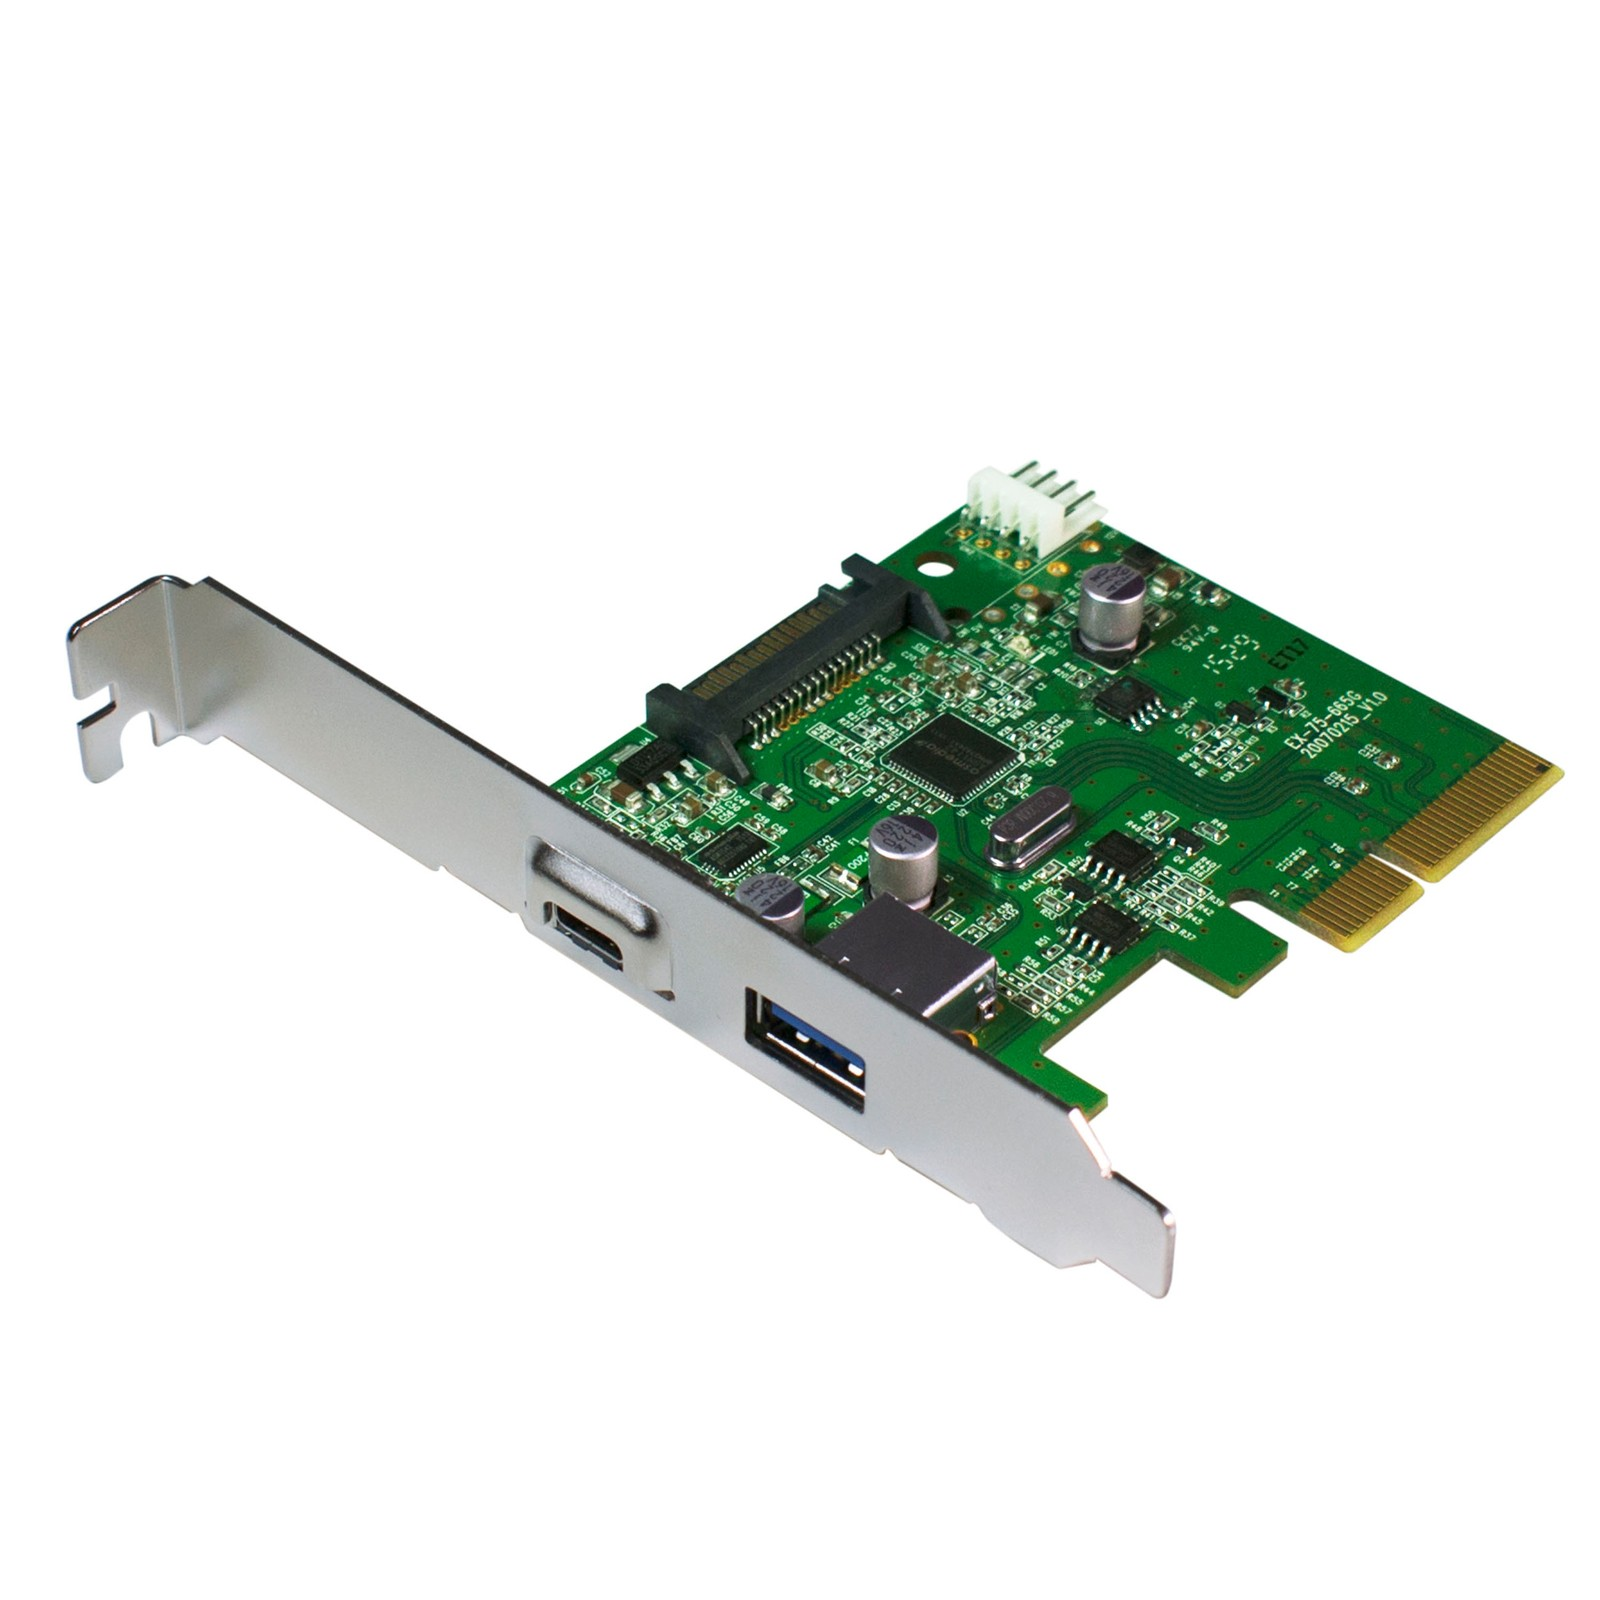 HornetTek Eagle PCIE Card to USB 3.1 Type A + Type C Ports 10 Gbps Max (HT-PCIEFAPC)